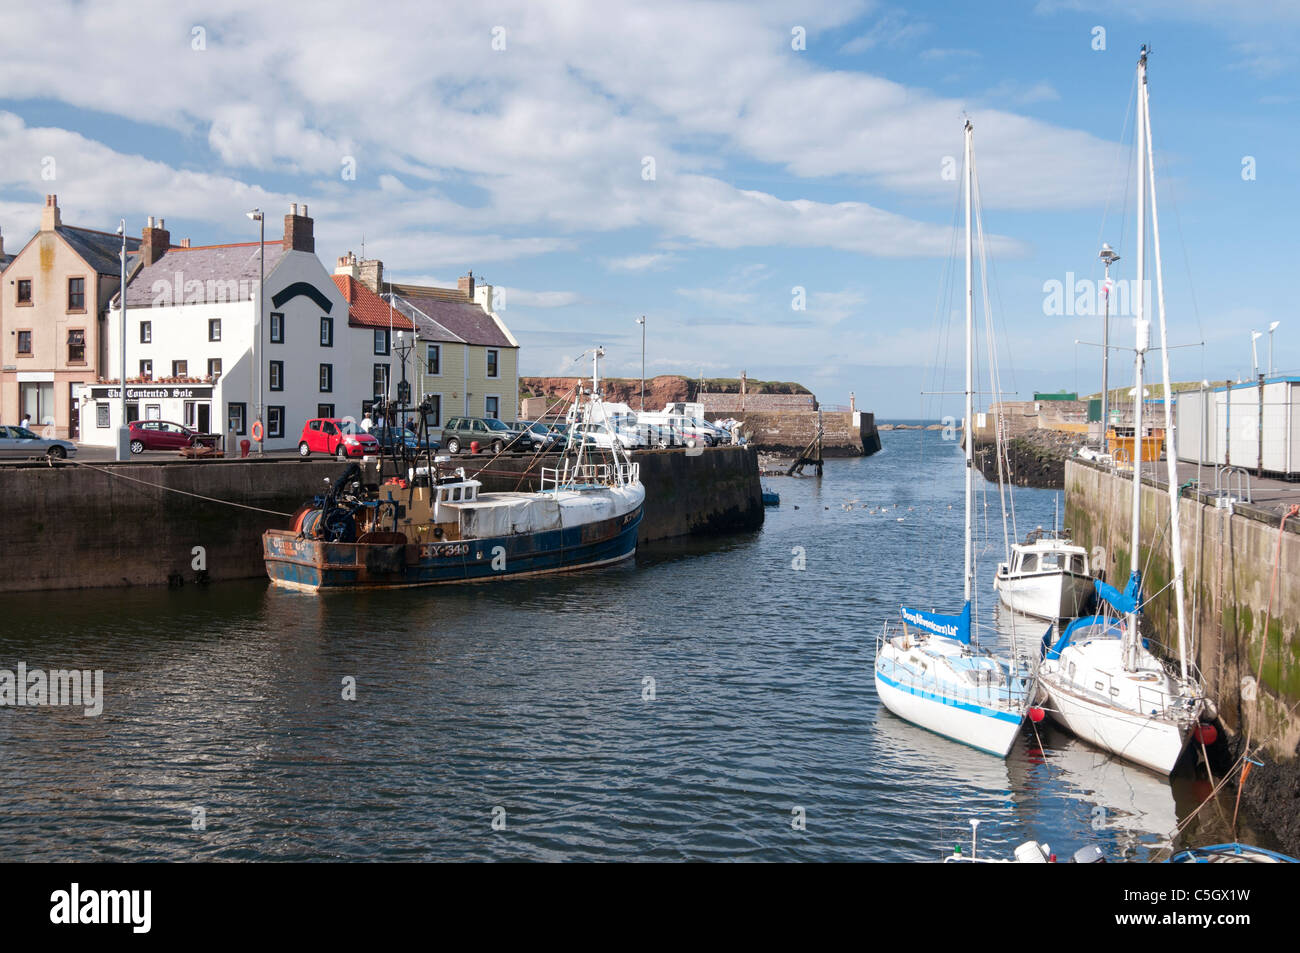 Eyemouth Harbour e barche a vela Immagini Stock